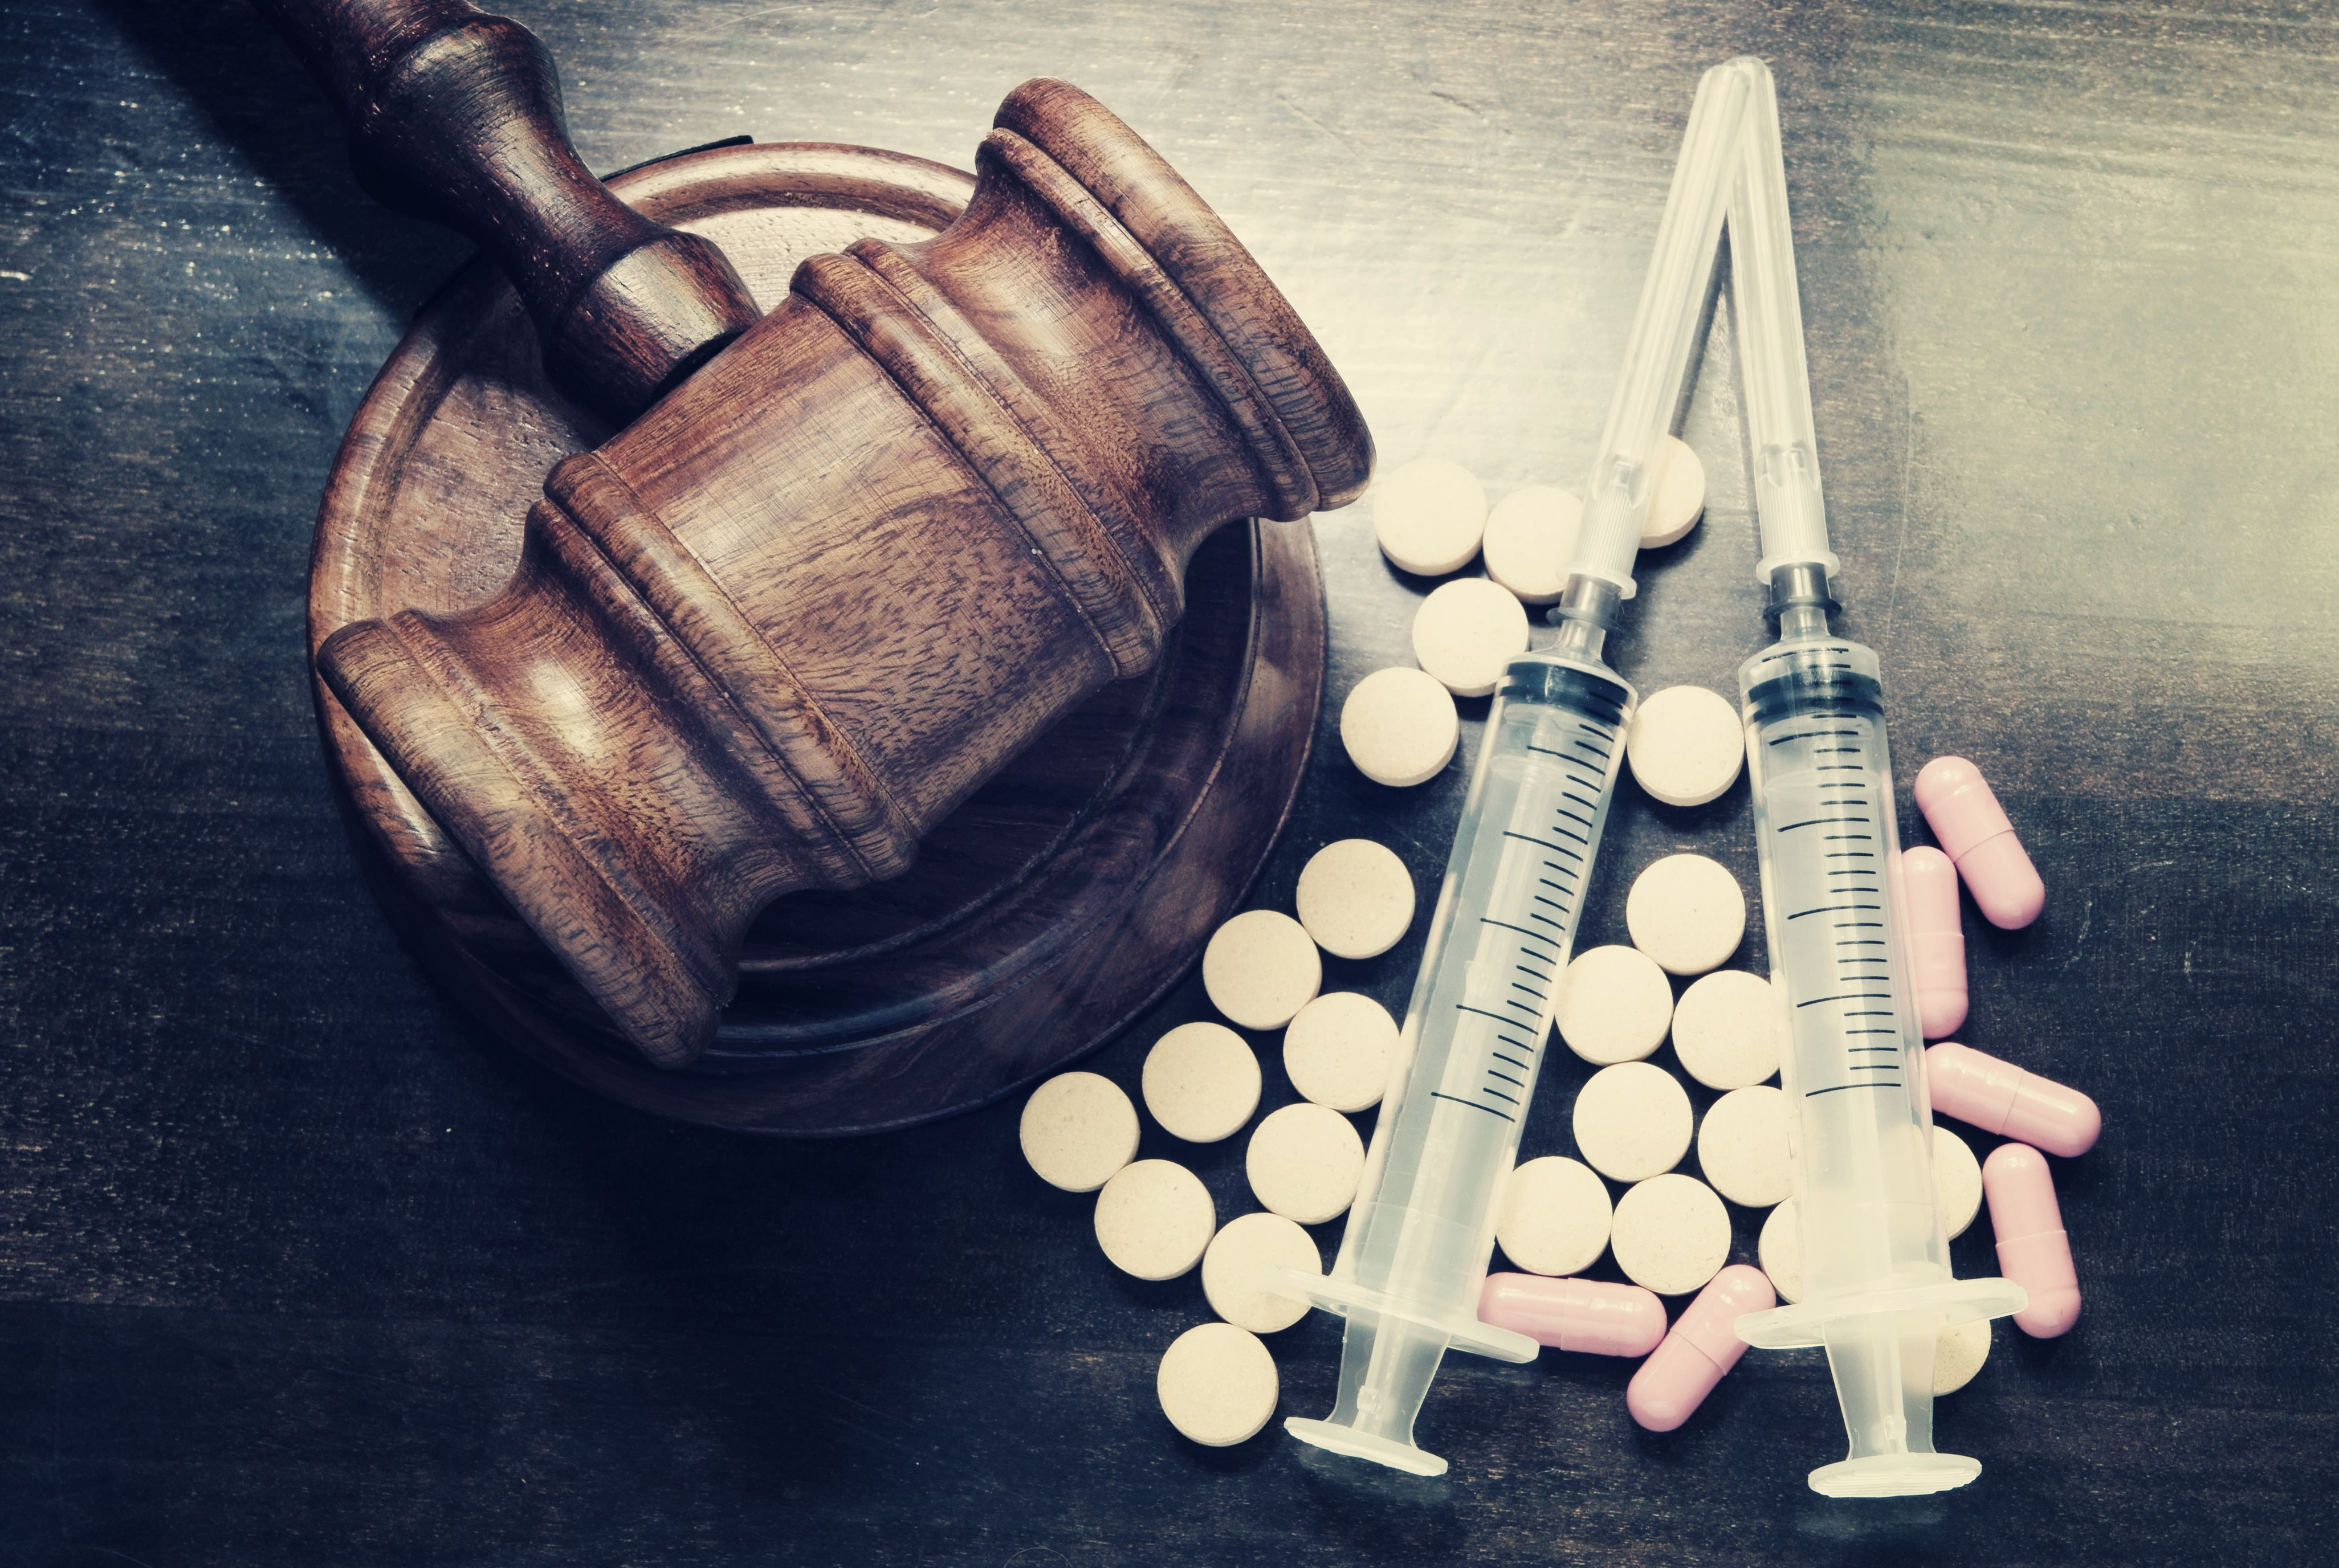 Gavel and drugs - Massachusetts drug classifications